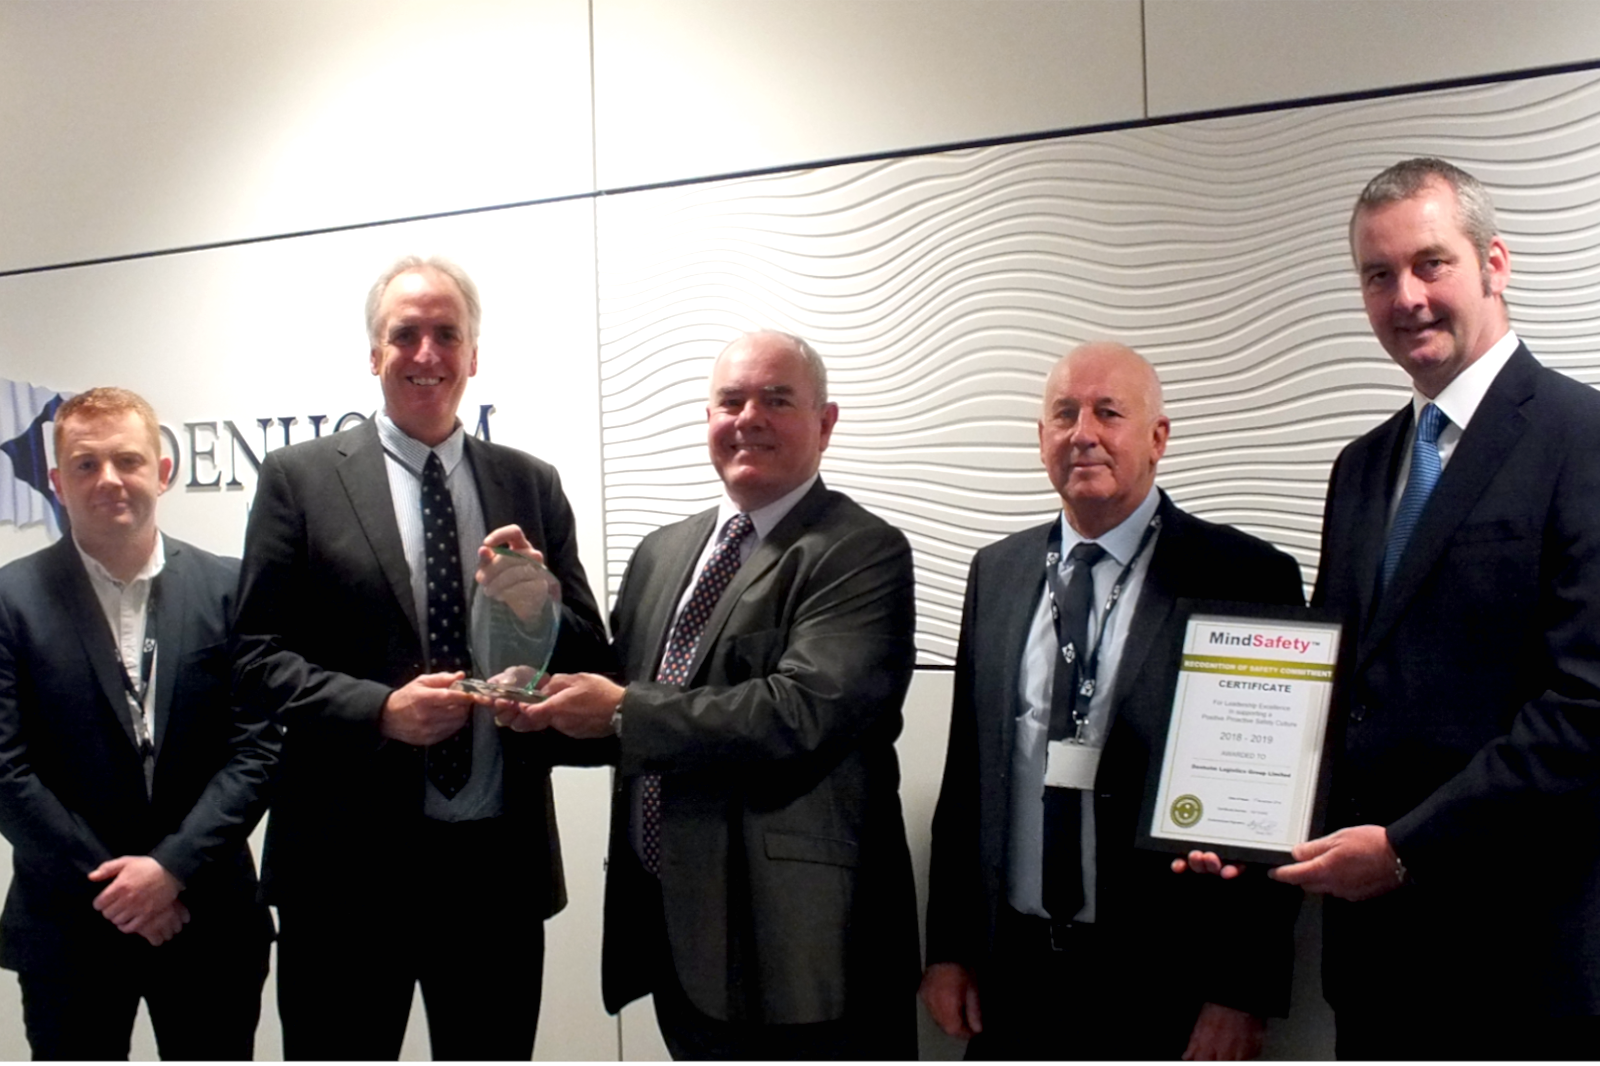 MindSafety Present Their Achievement Award to Denholm Logistics Group